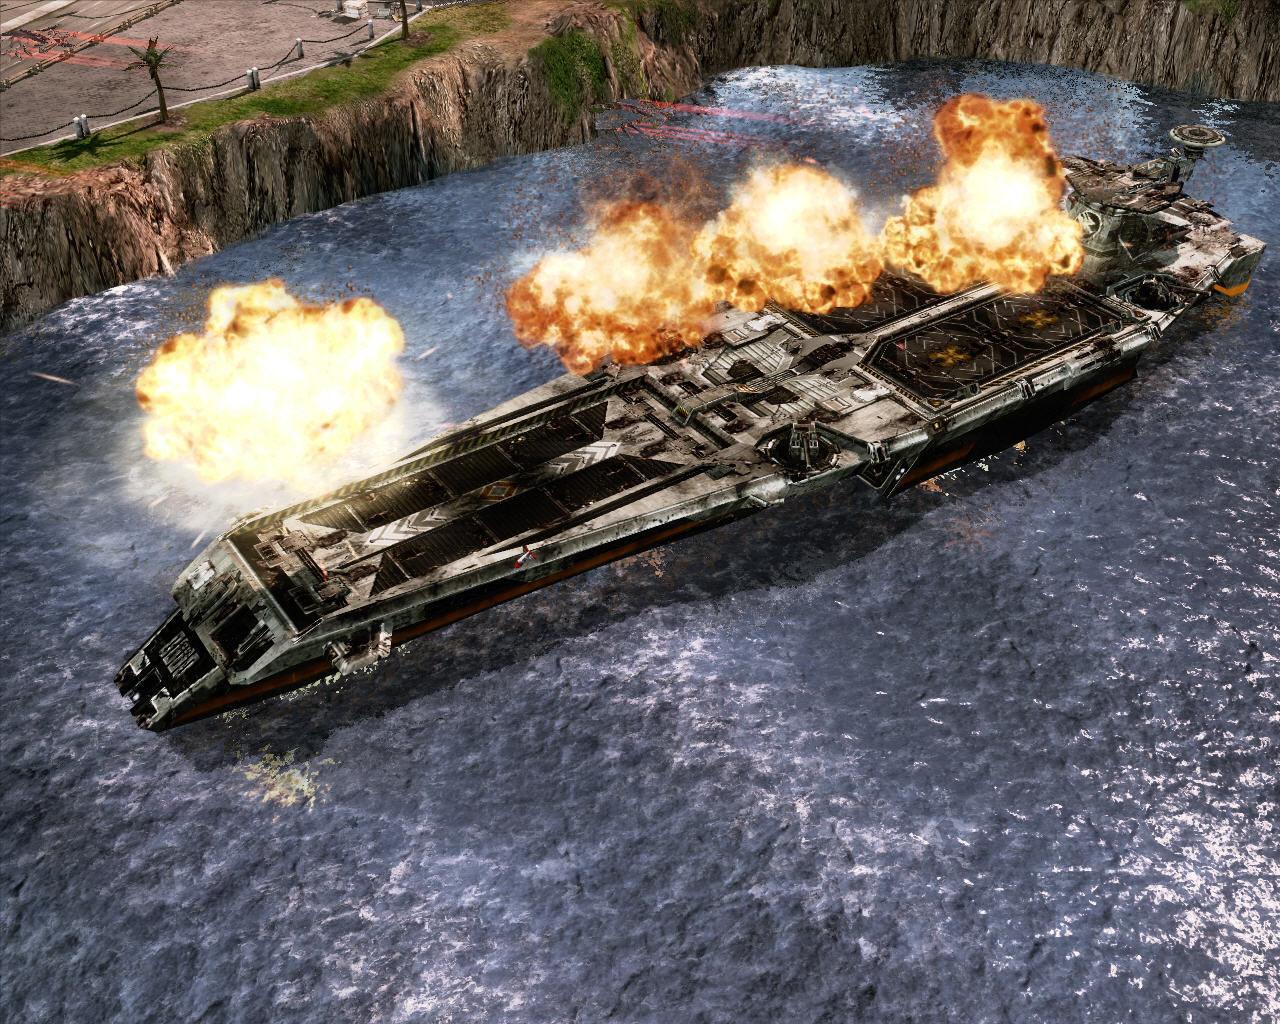 Command & Conquer 3: Tiberium Wars Windows Bombarding the GDI aircraft carrier.